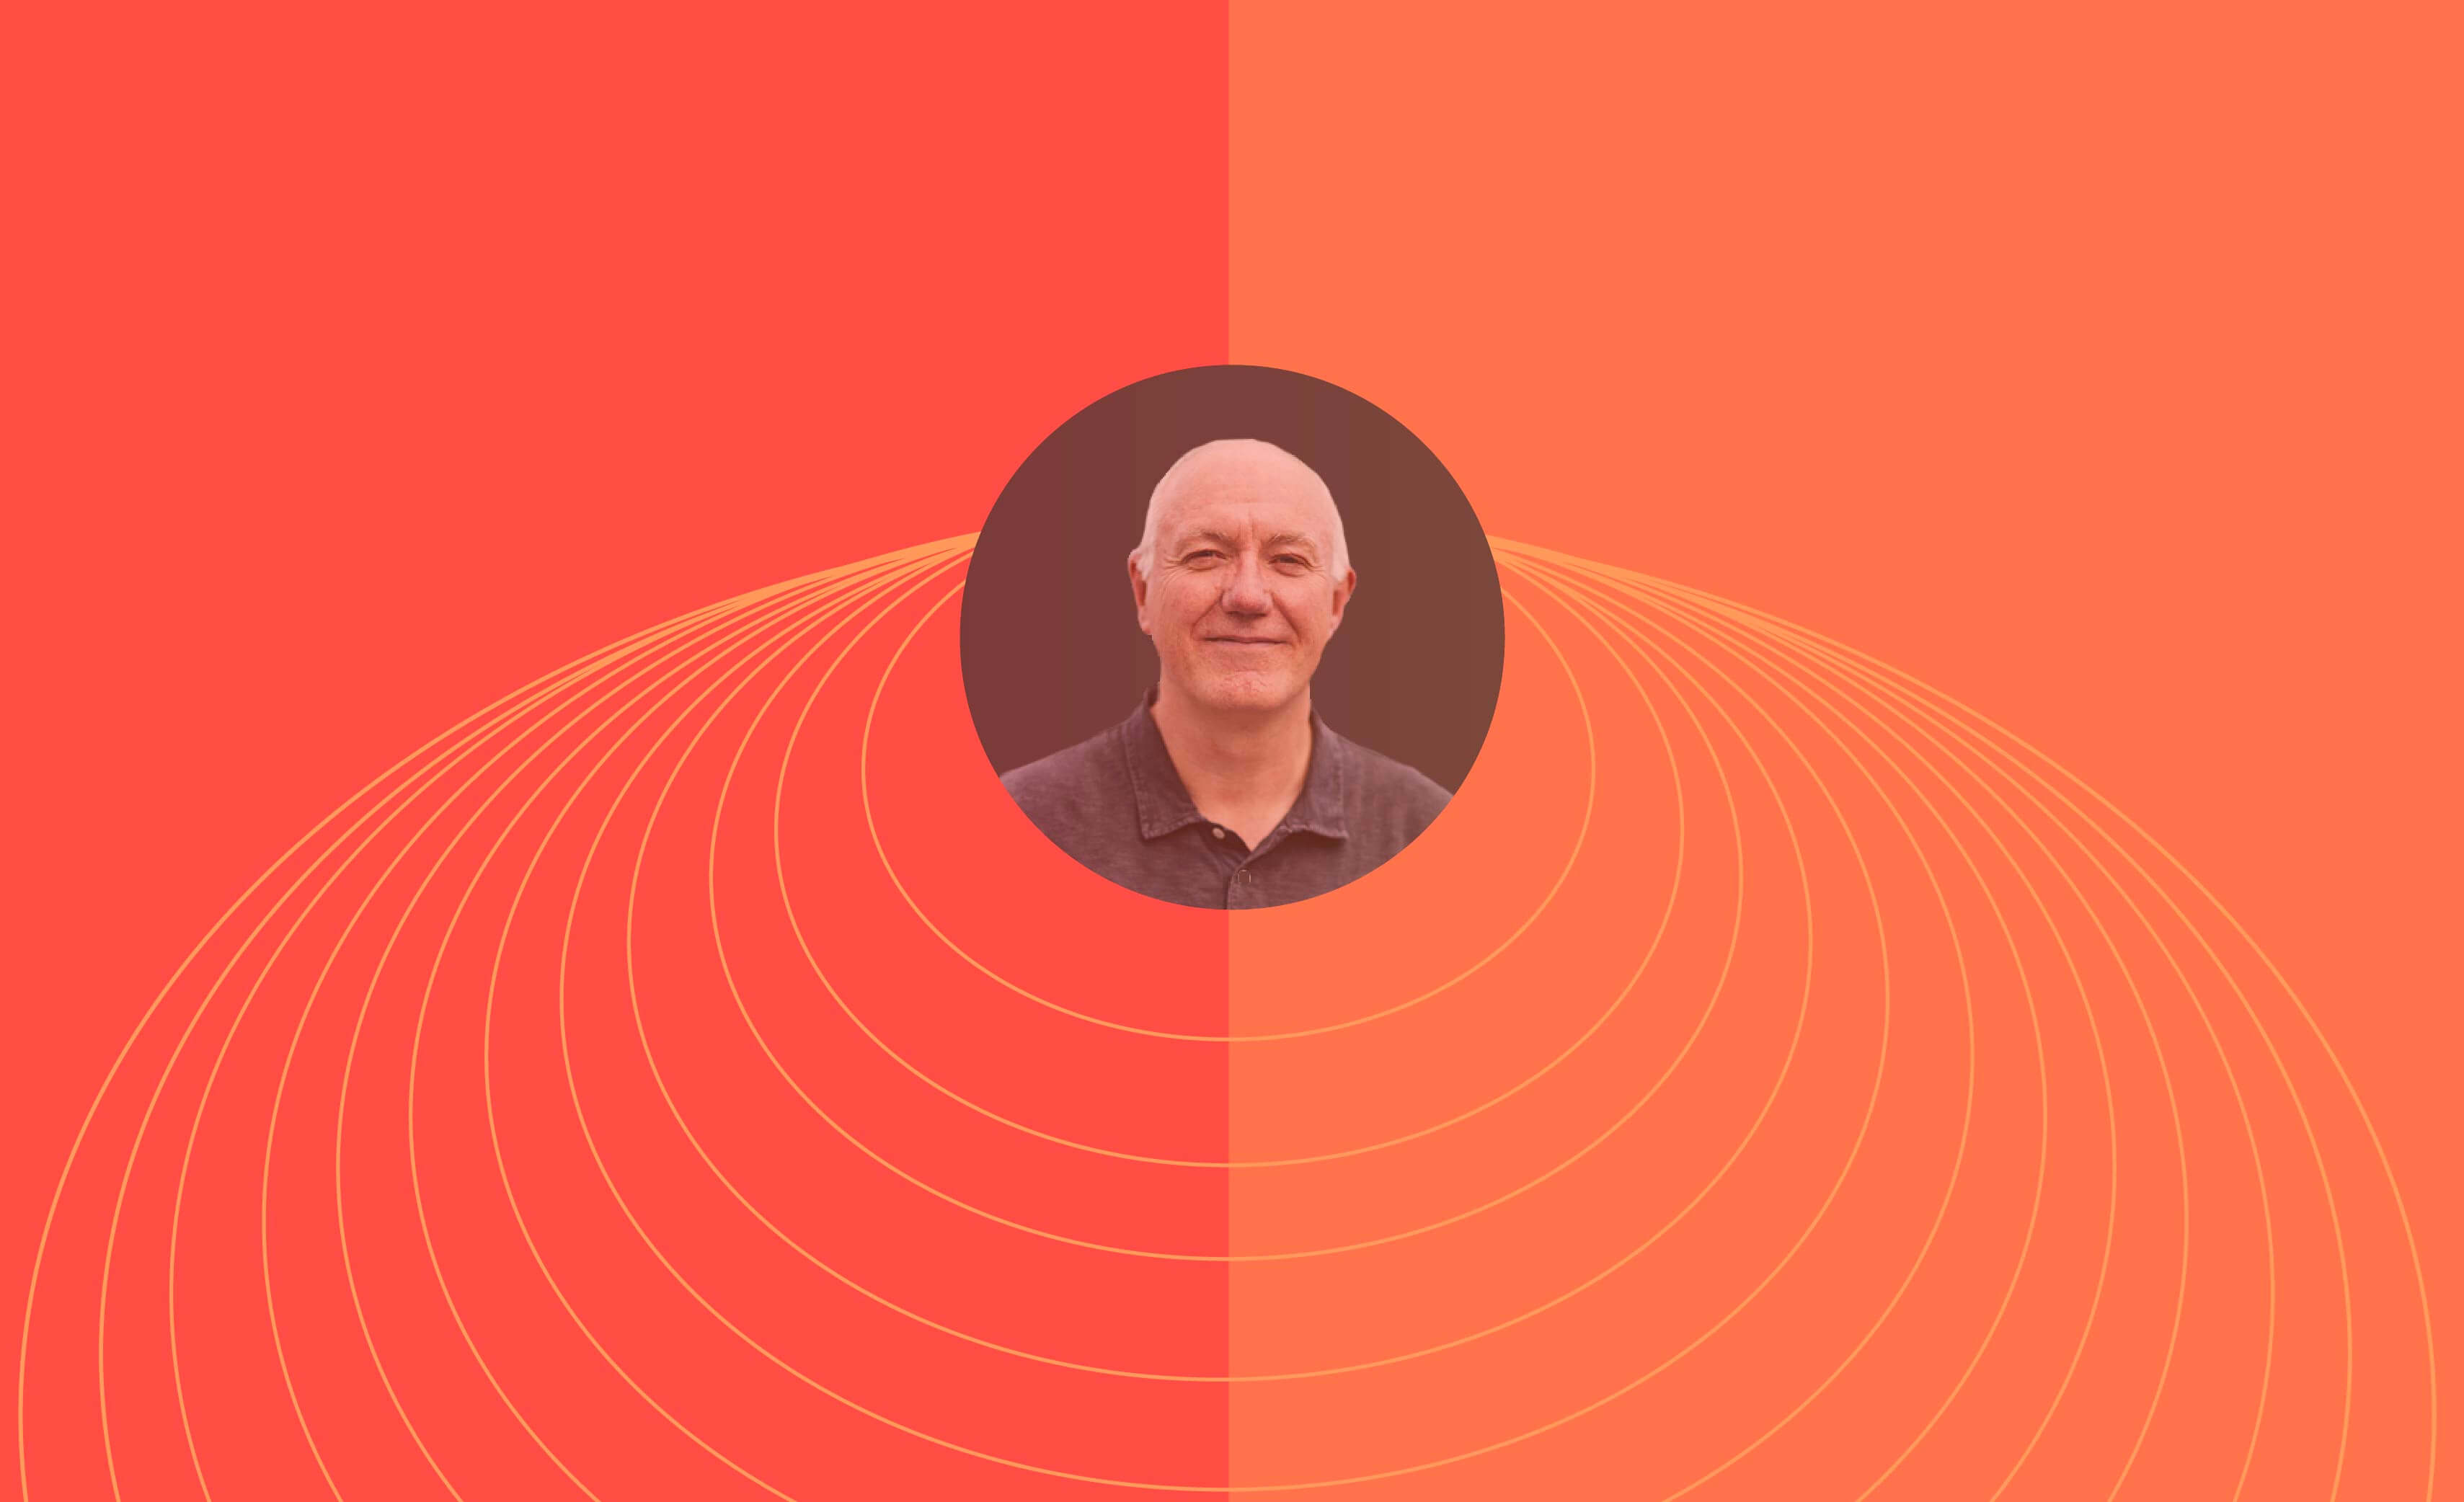 Keith Teare Joins Fluz Advisory Team